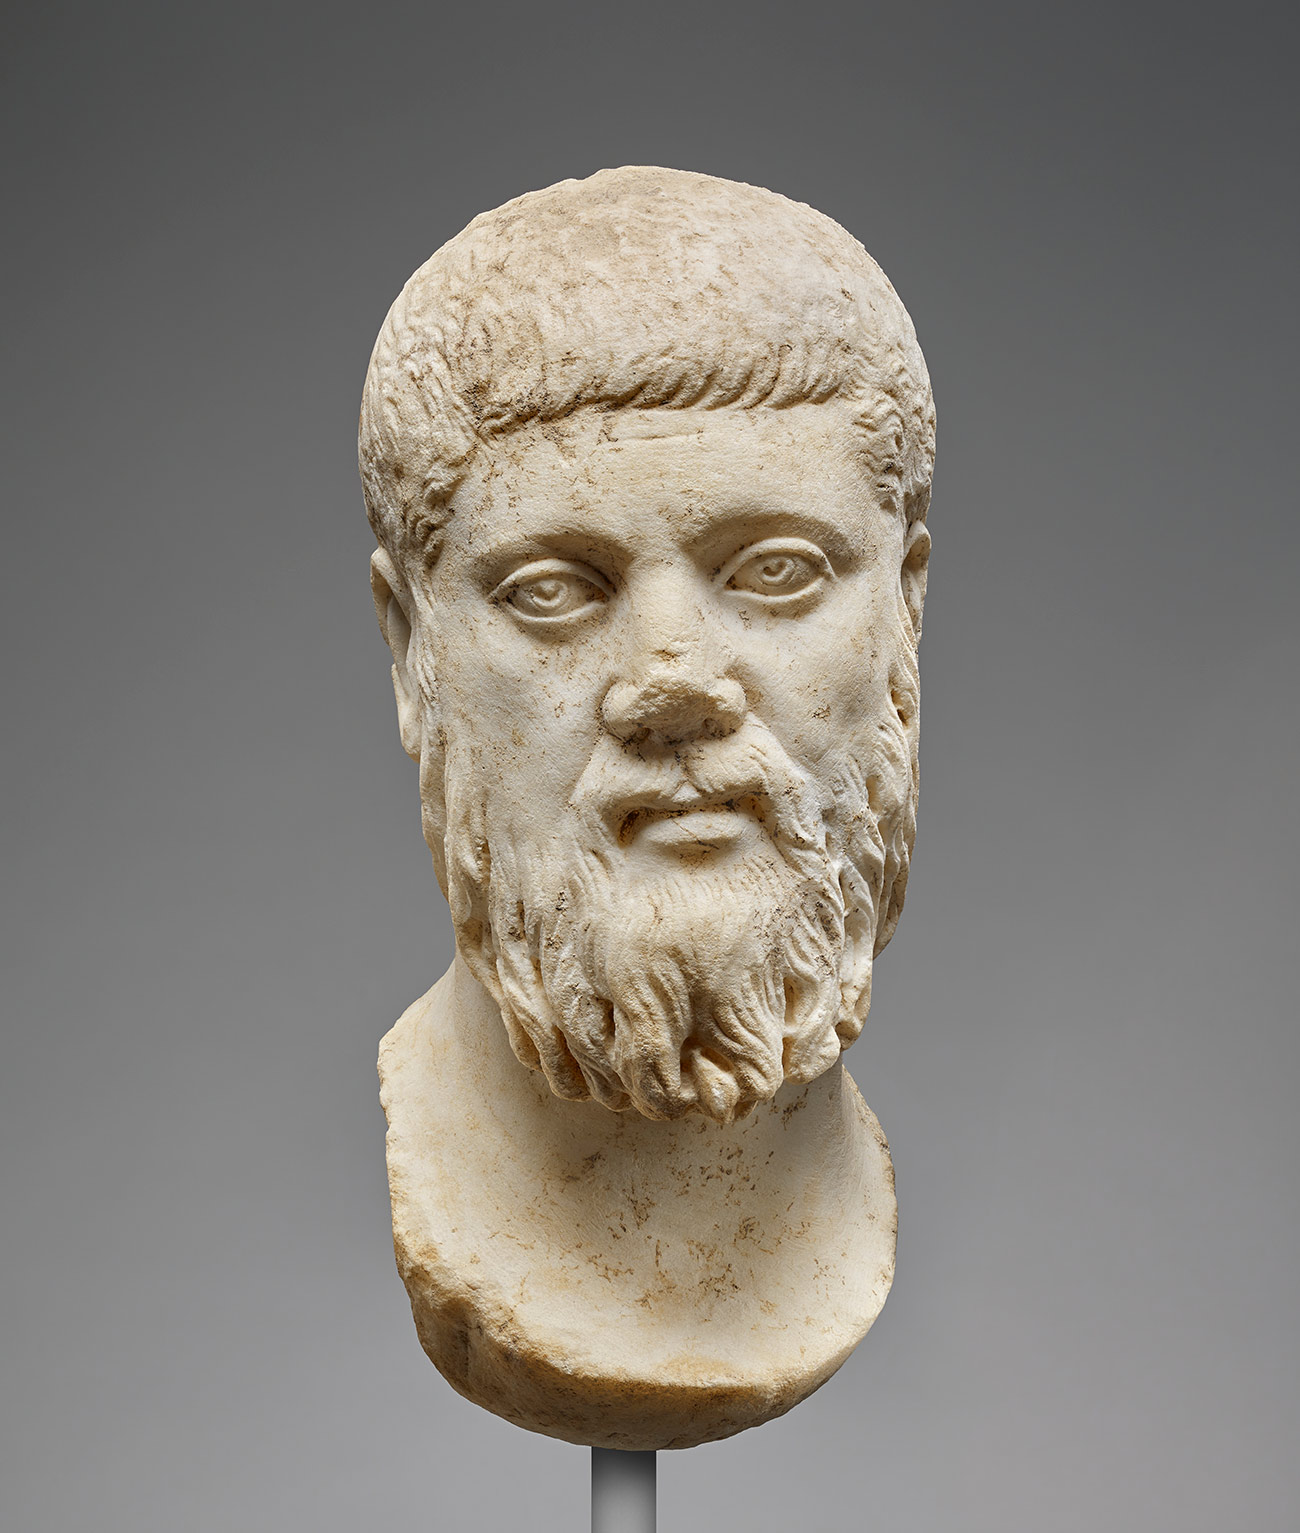 Marble head of a bearded, pensive philosopher, his head slightly turned, making eye contact with the viewer